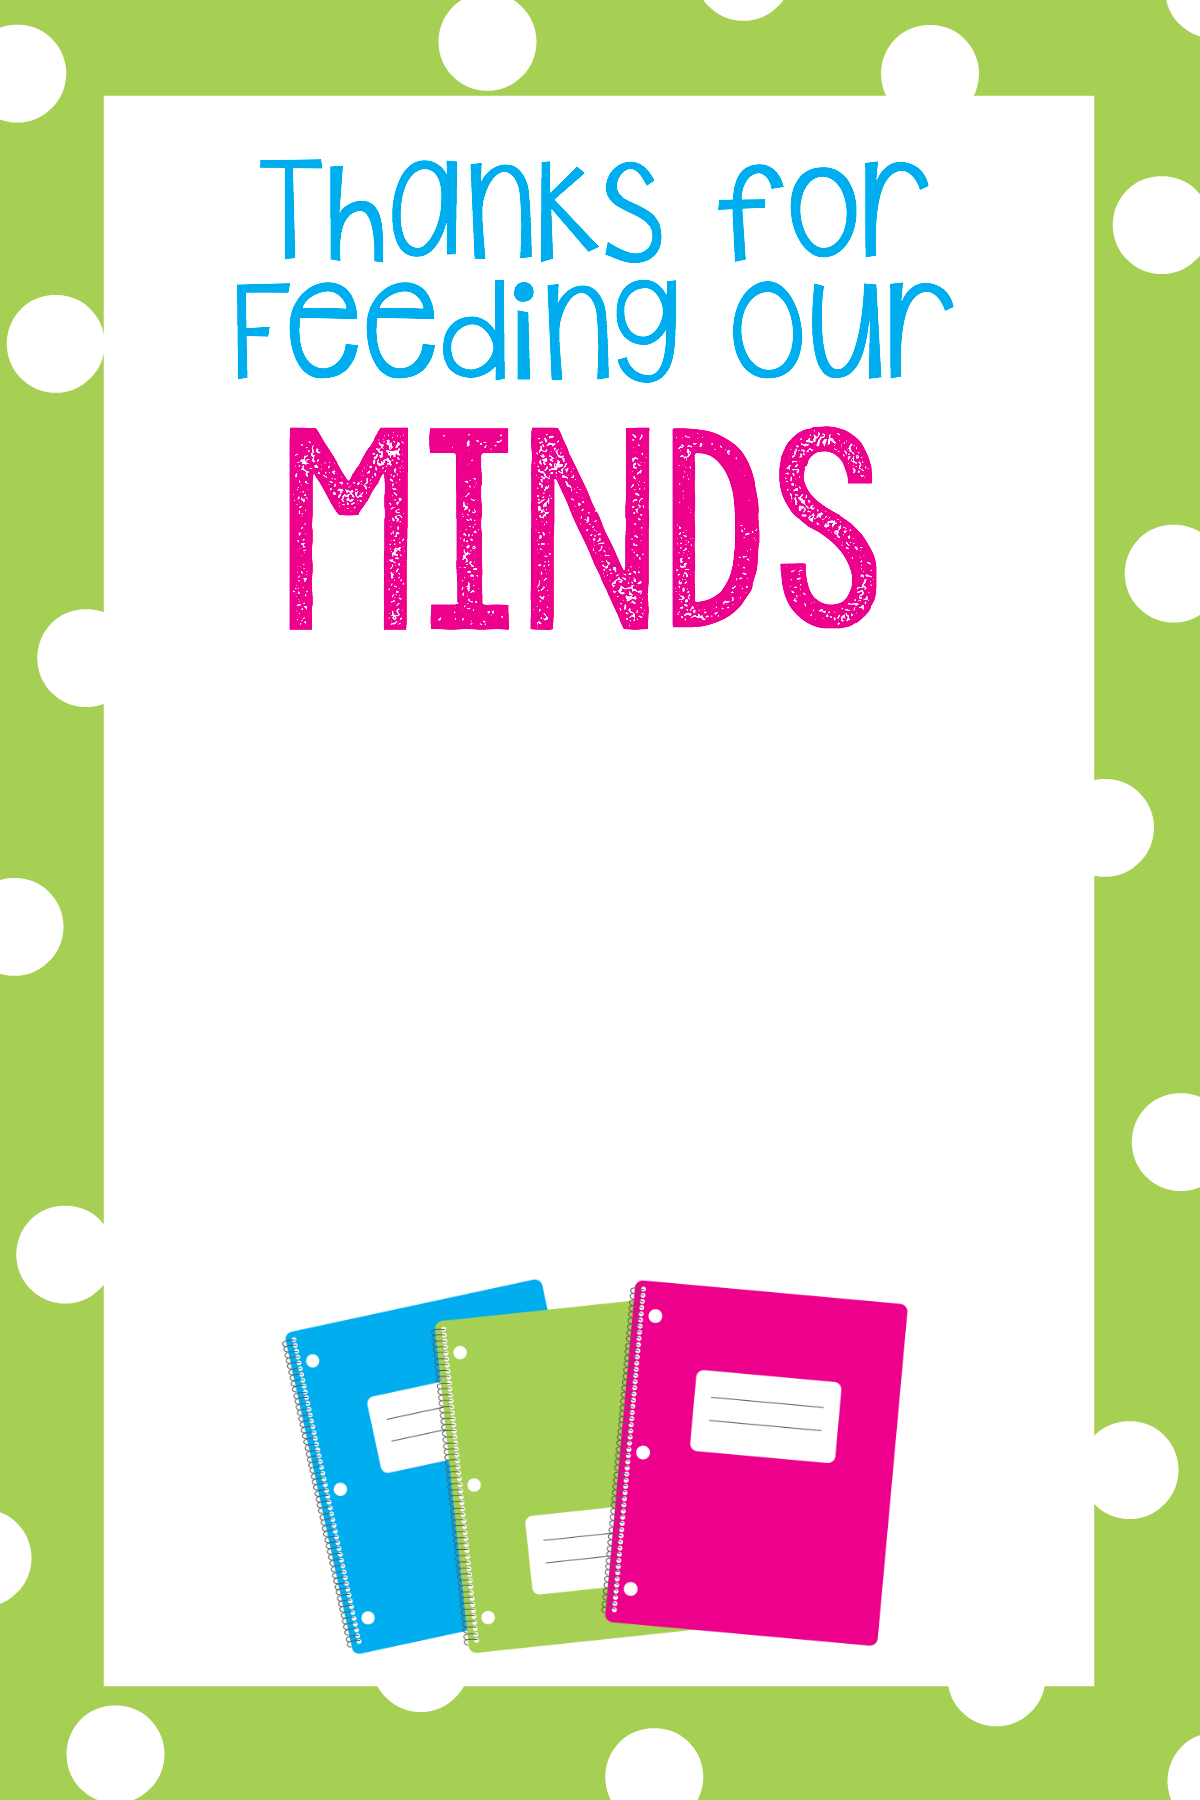 Printable Gift Card Holders for Teachers